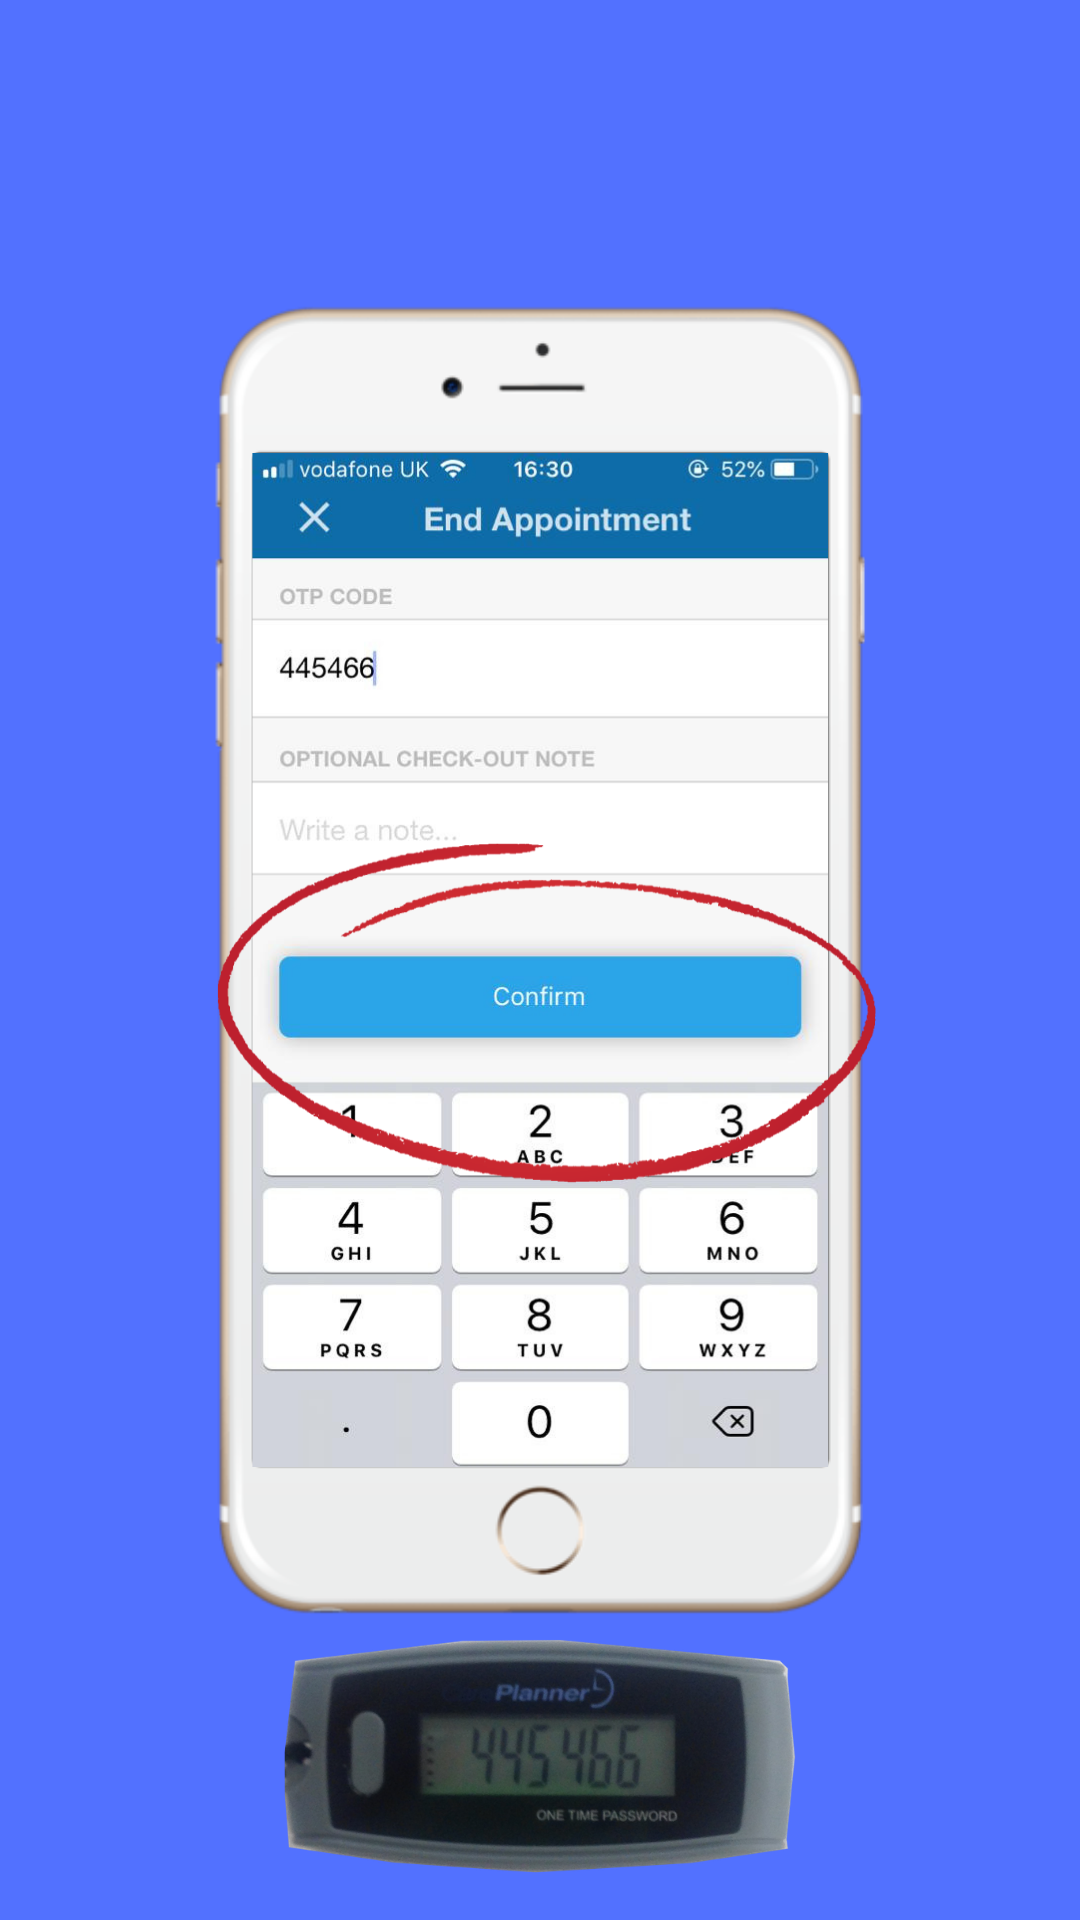 Step 3: · Press the button on the OTP device to find a 6-digit code. (The code will only stay visible for 30 seconds).  Step 4: Enter the code on the app and press 'confirm.'